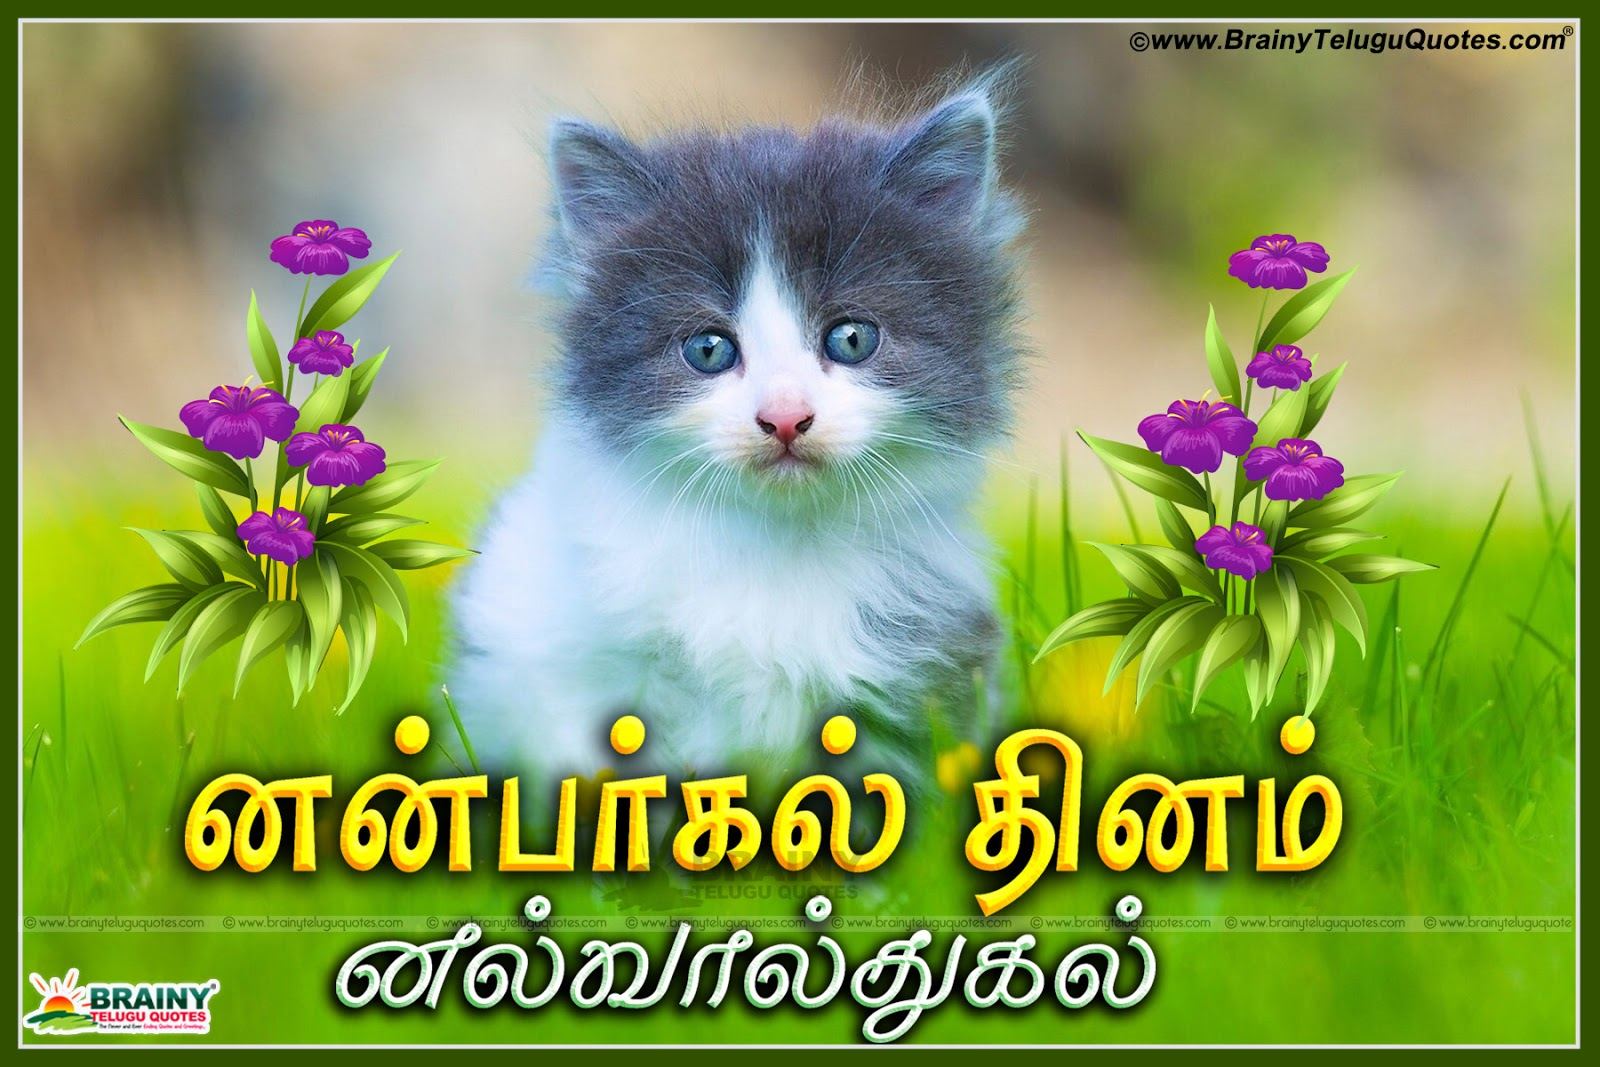 Tamil friendship day best kavithai images brainyteluguquotes tamil friendship day best kavithai images kristyandbryce Image collections